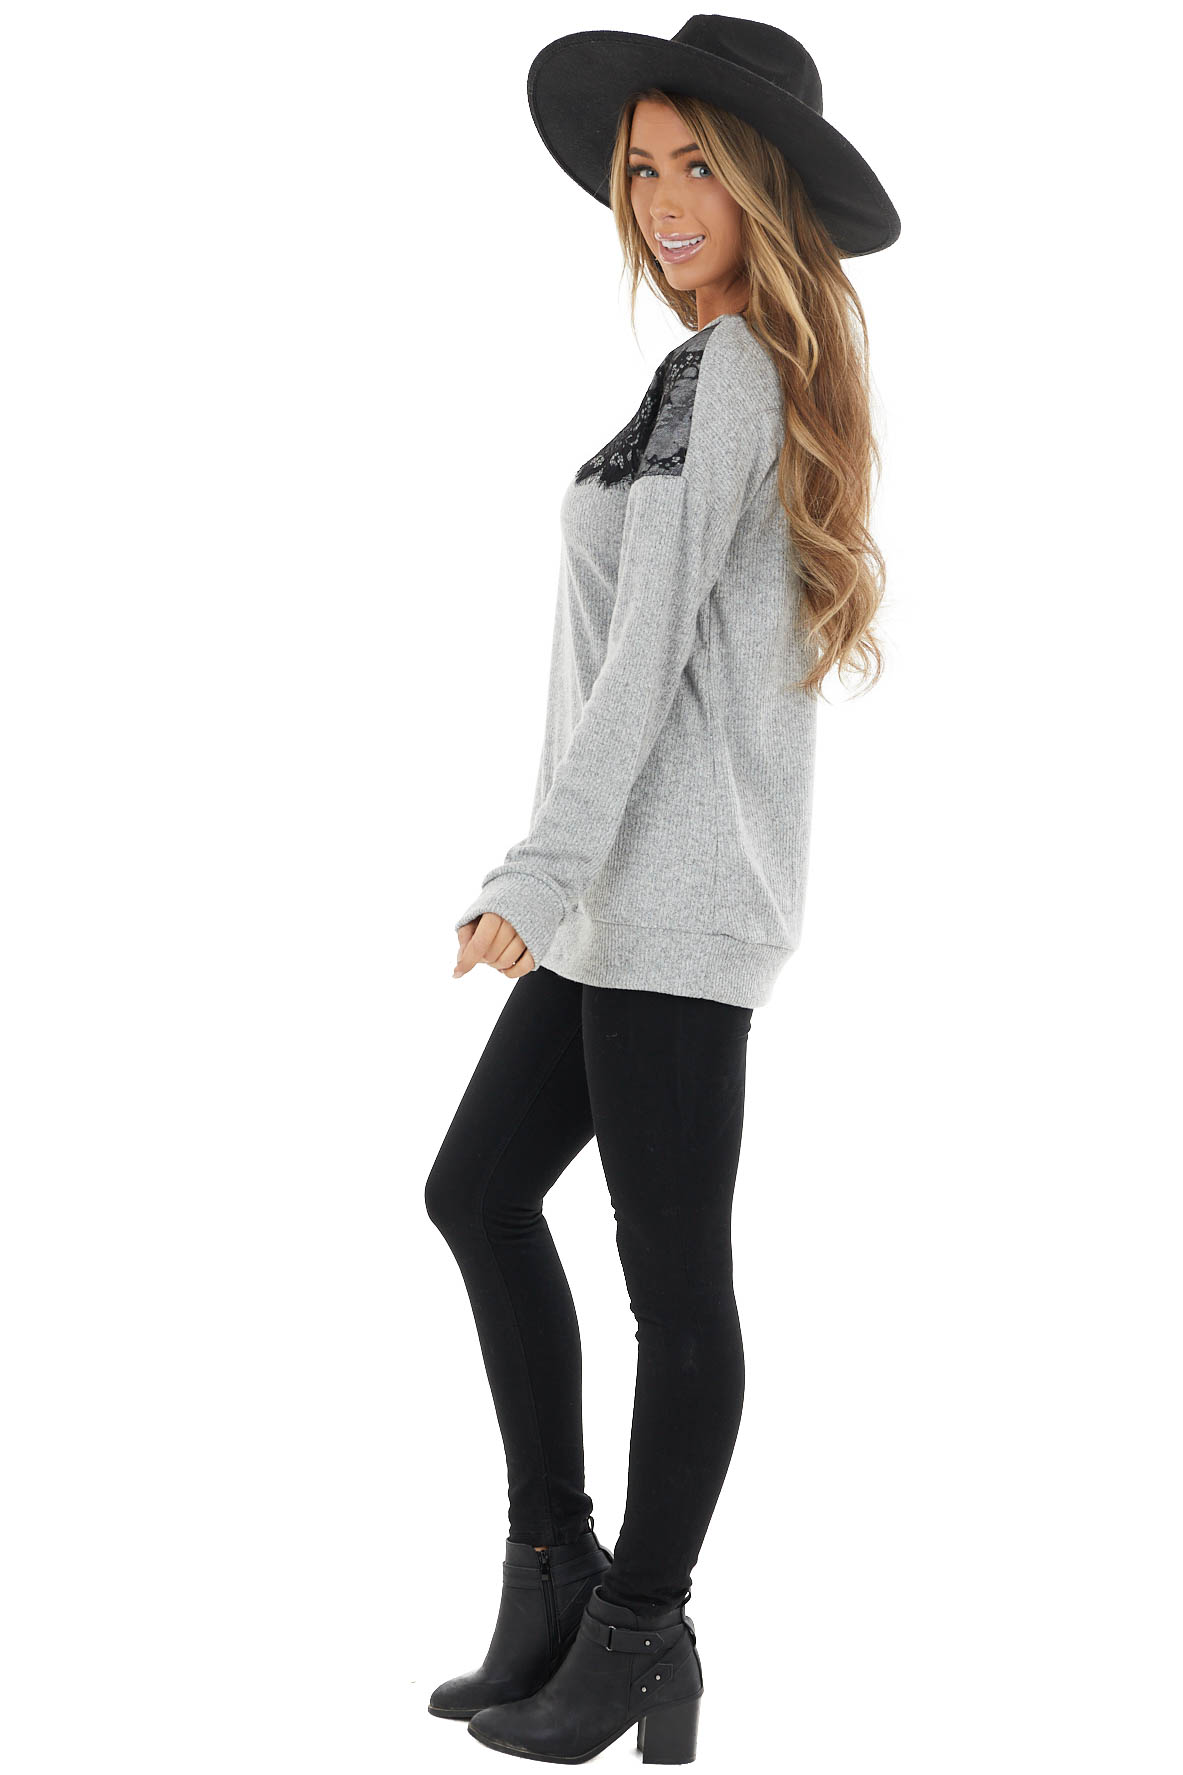 Heathered Grey Long Sleeve Knit Top with Black Lace Details